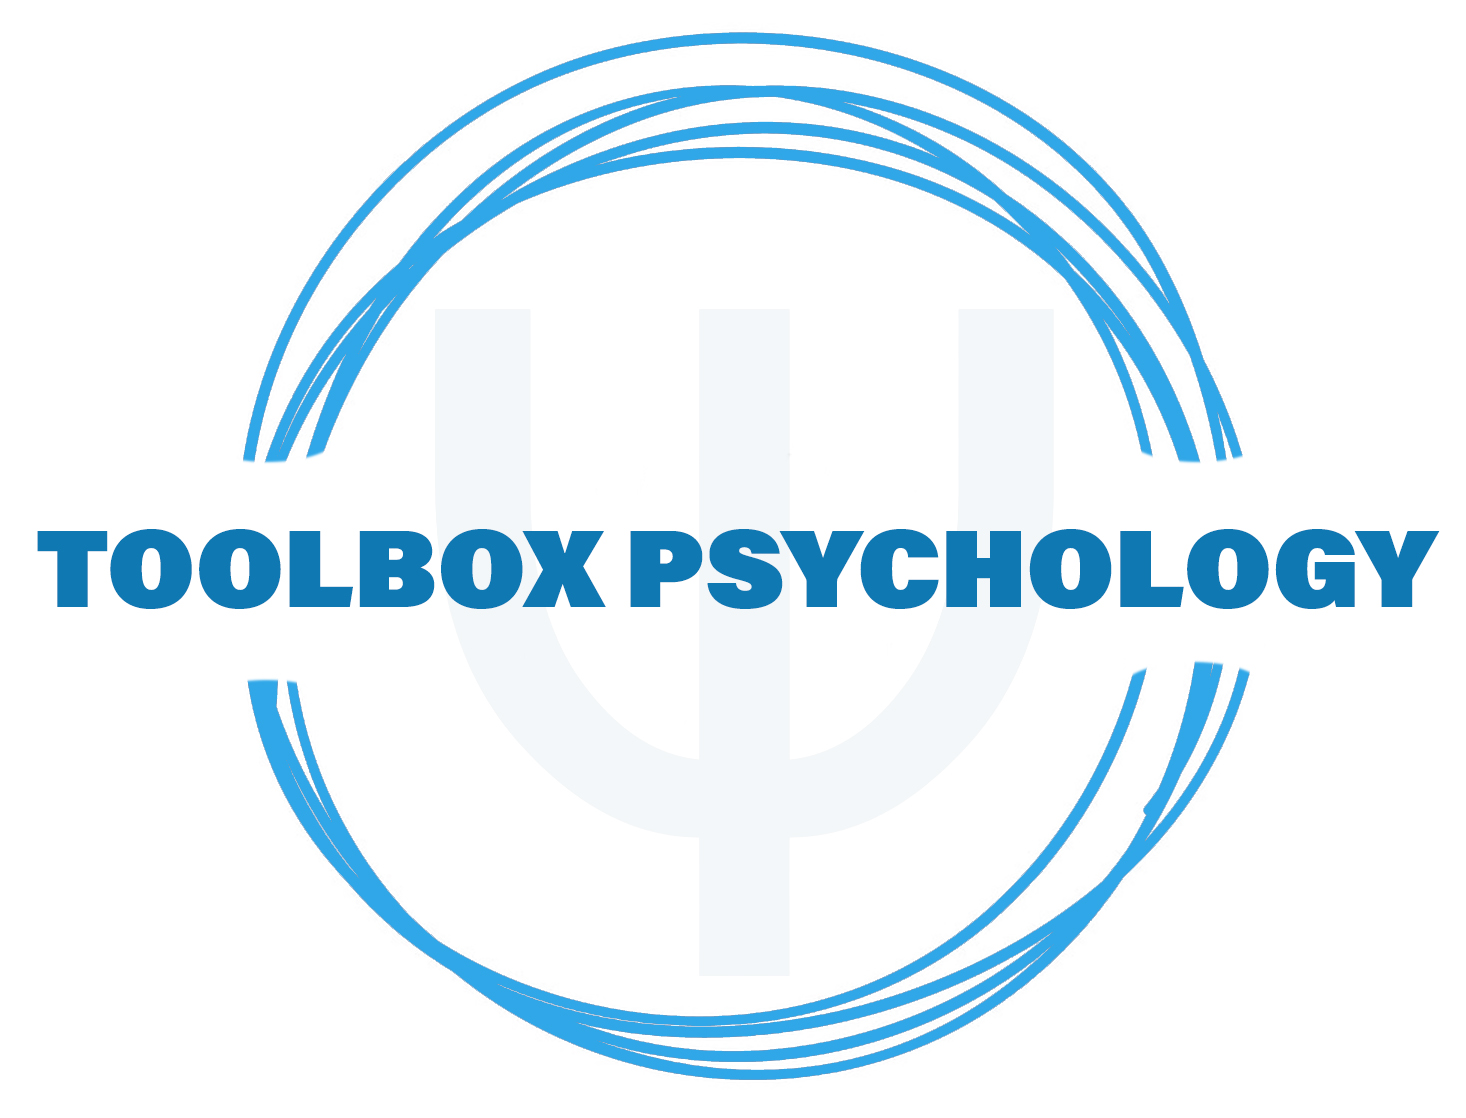 TOOLBOX PSYCHOLOGY